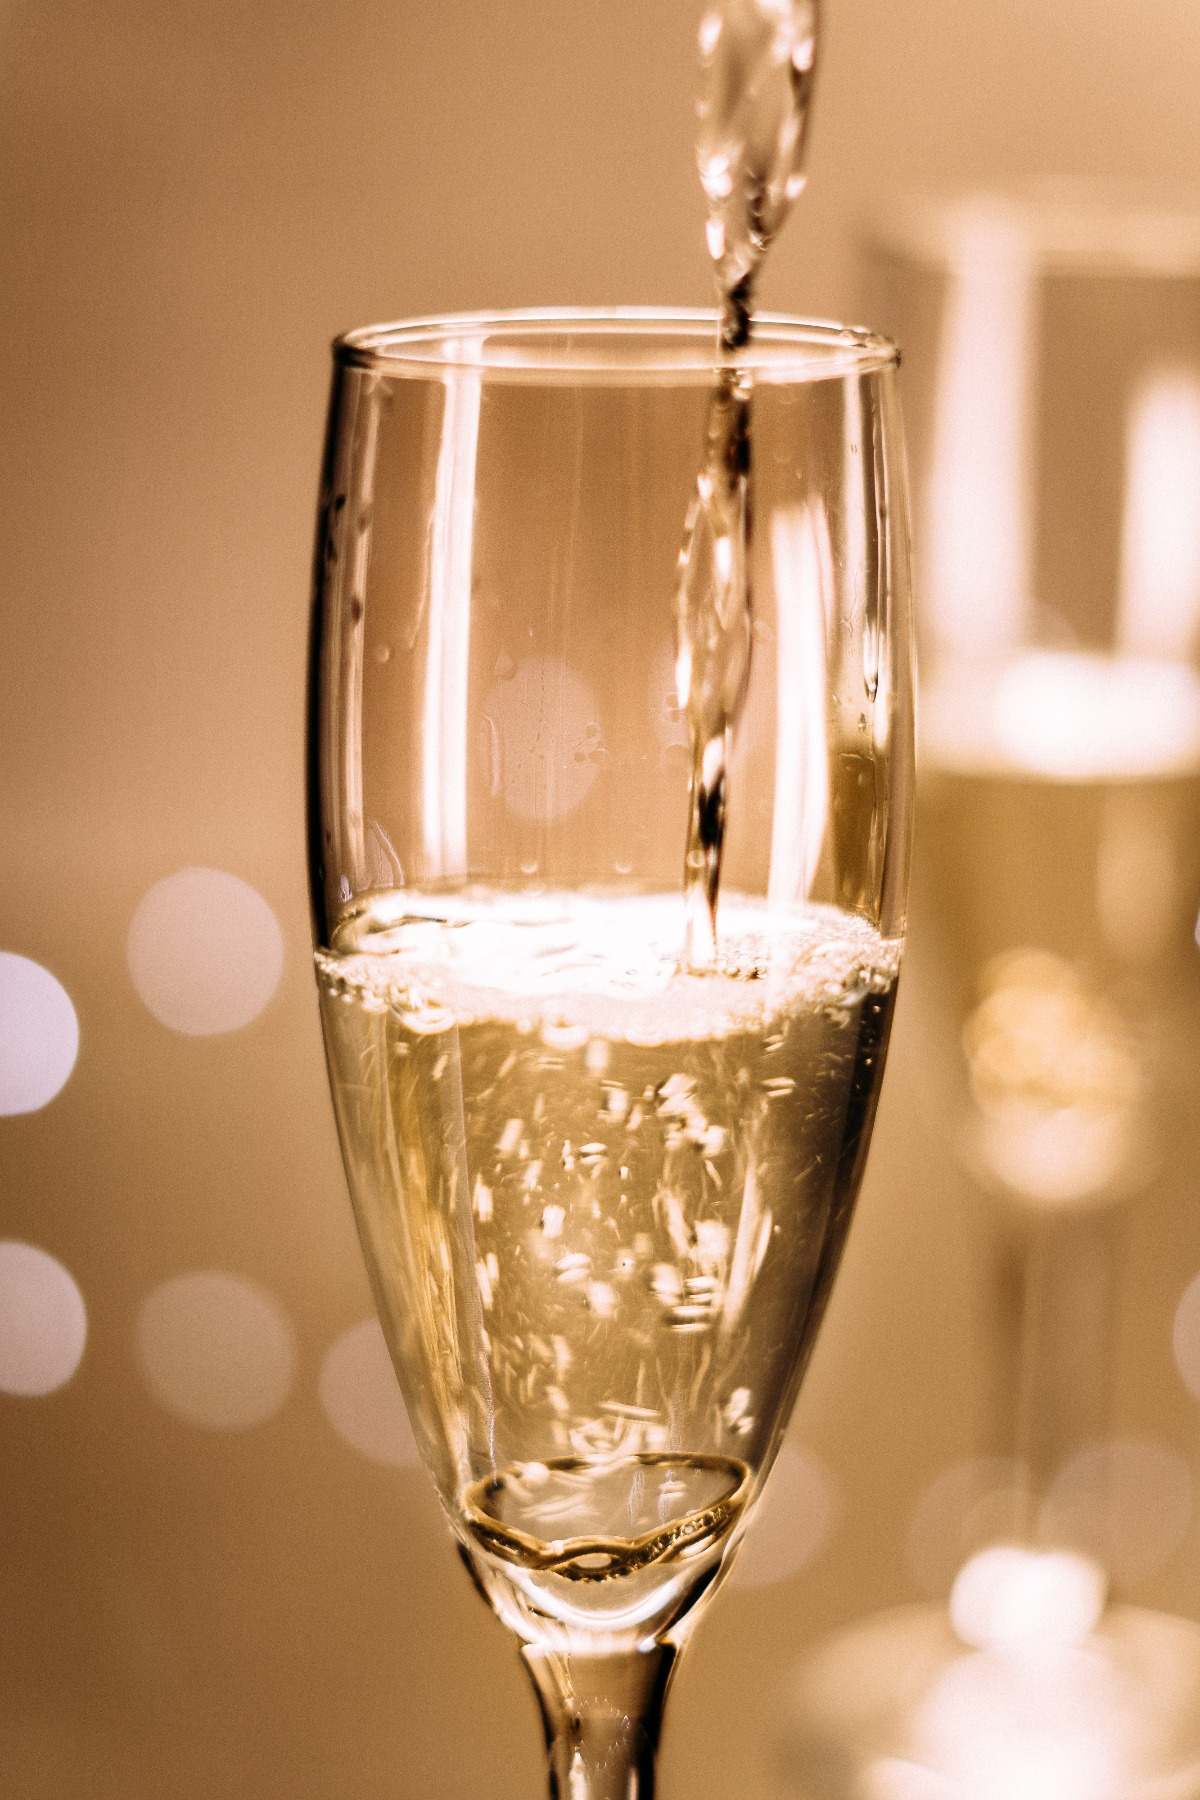 champagne close up.jpg